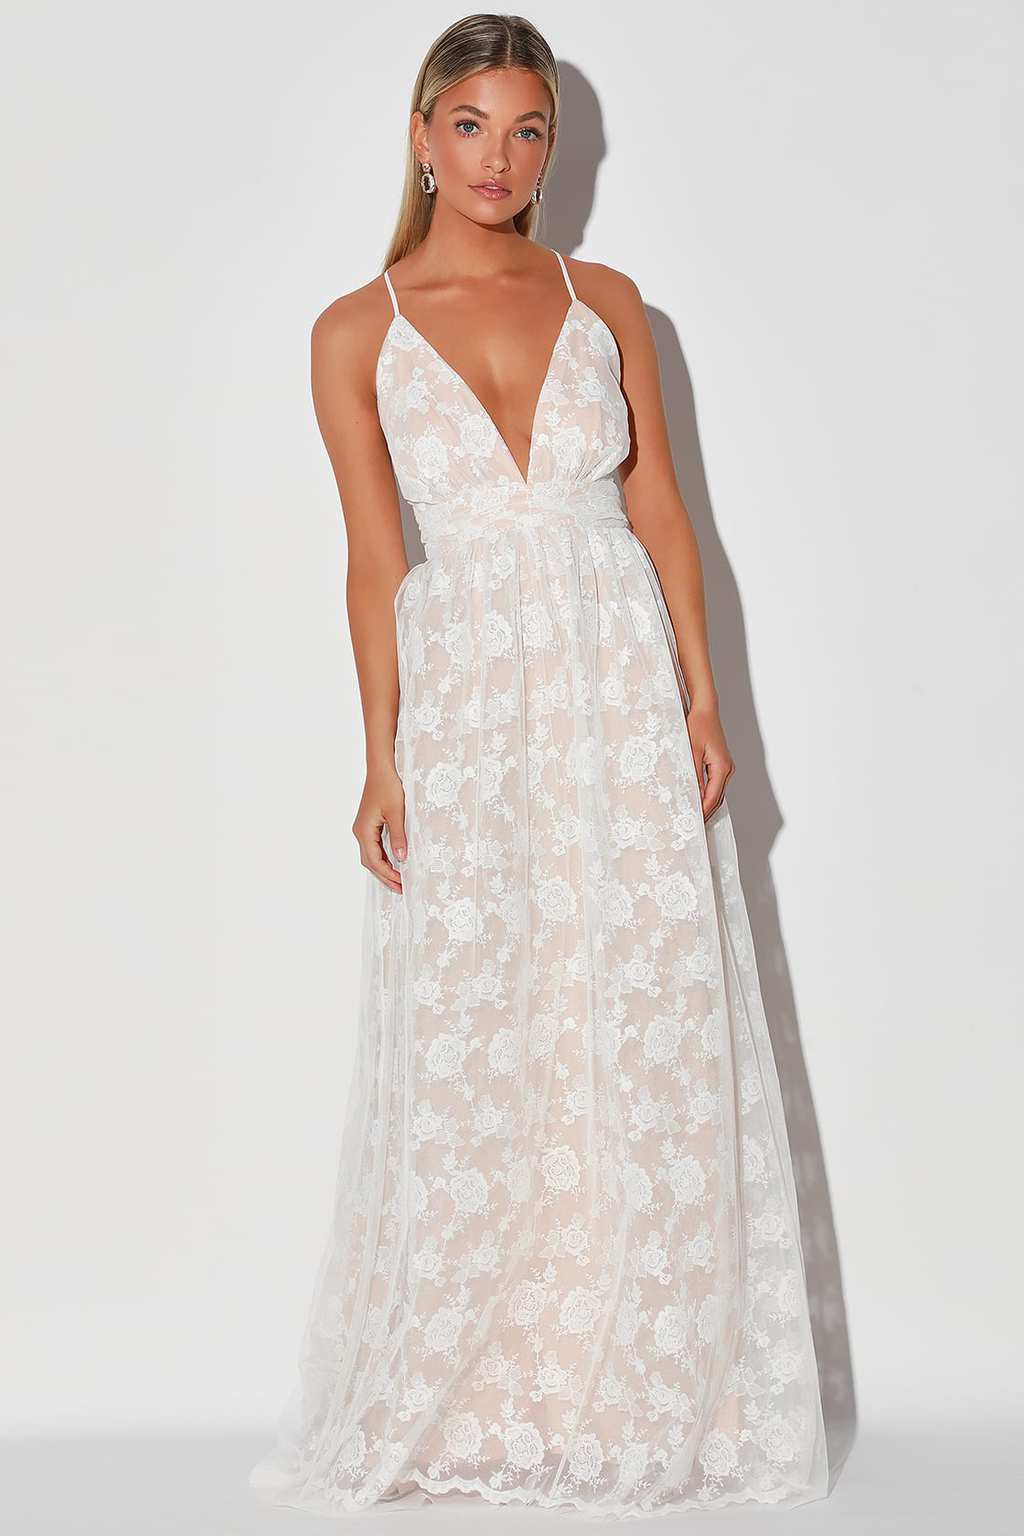 White and beige embroidered lace backless maxi dress from Lulu's